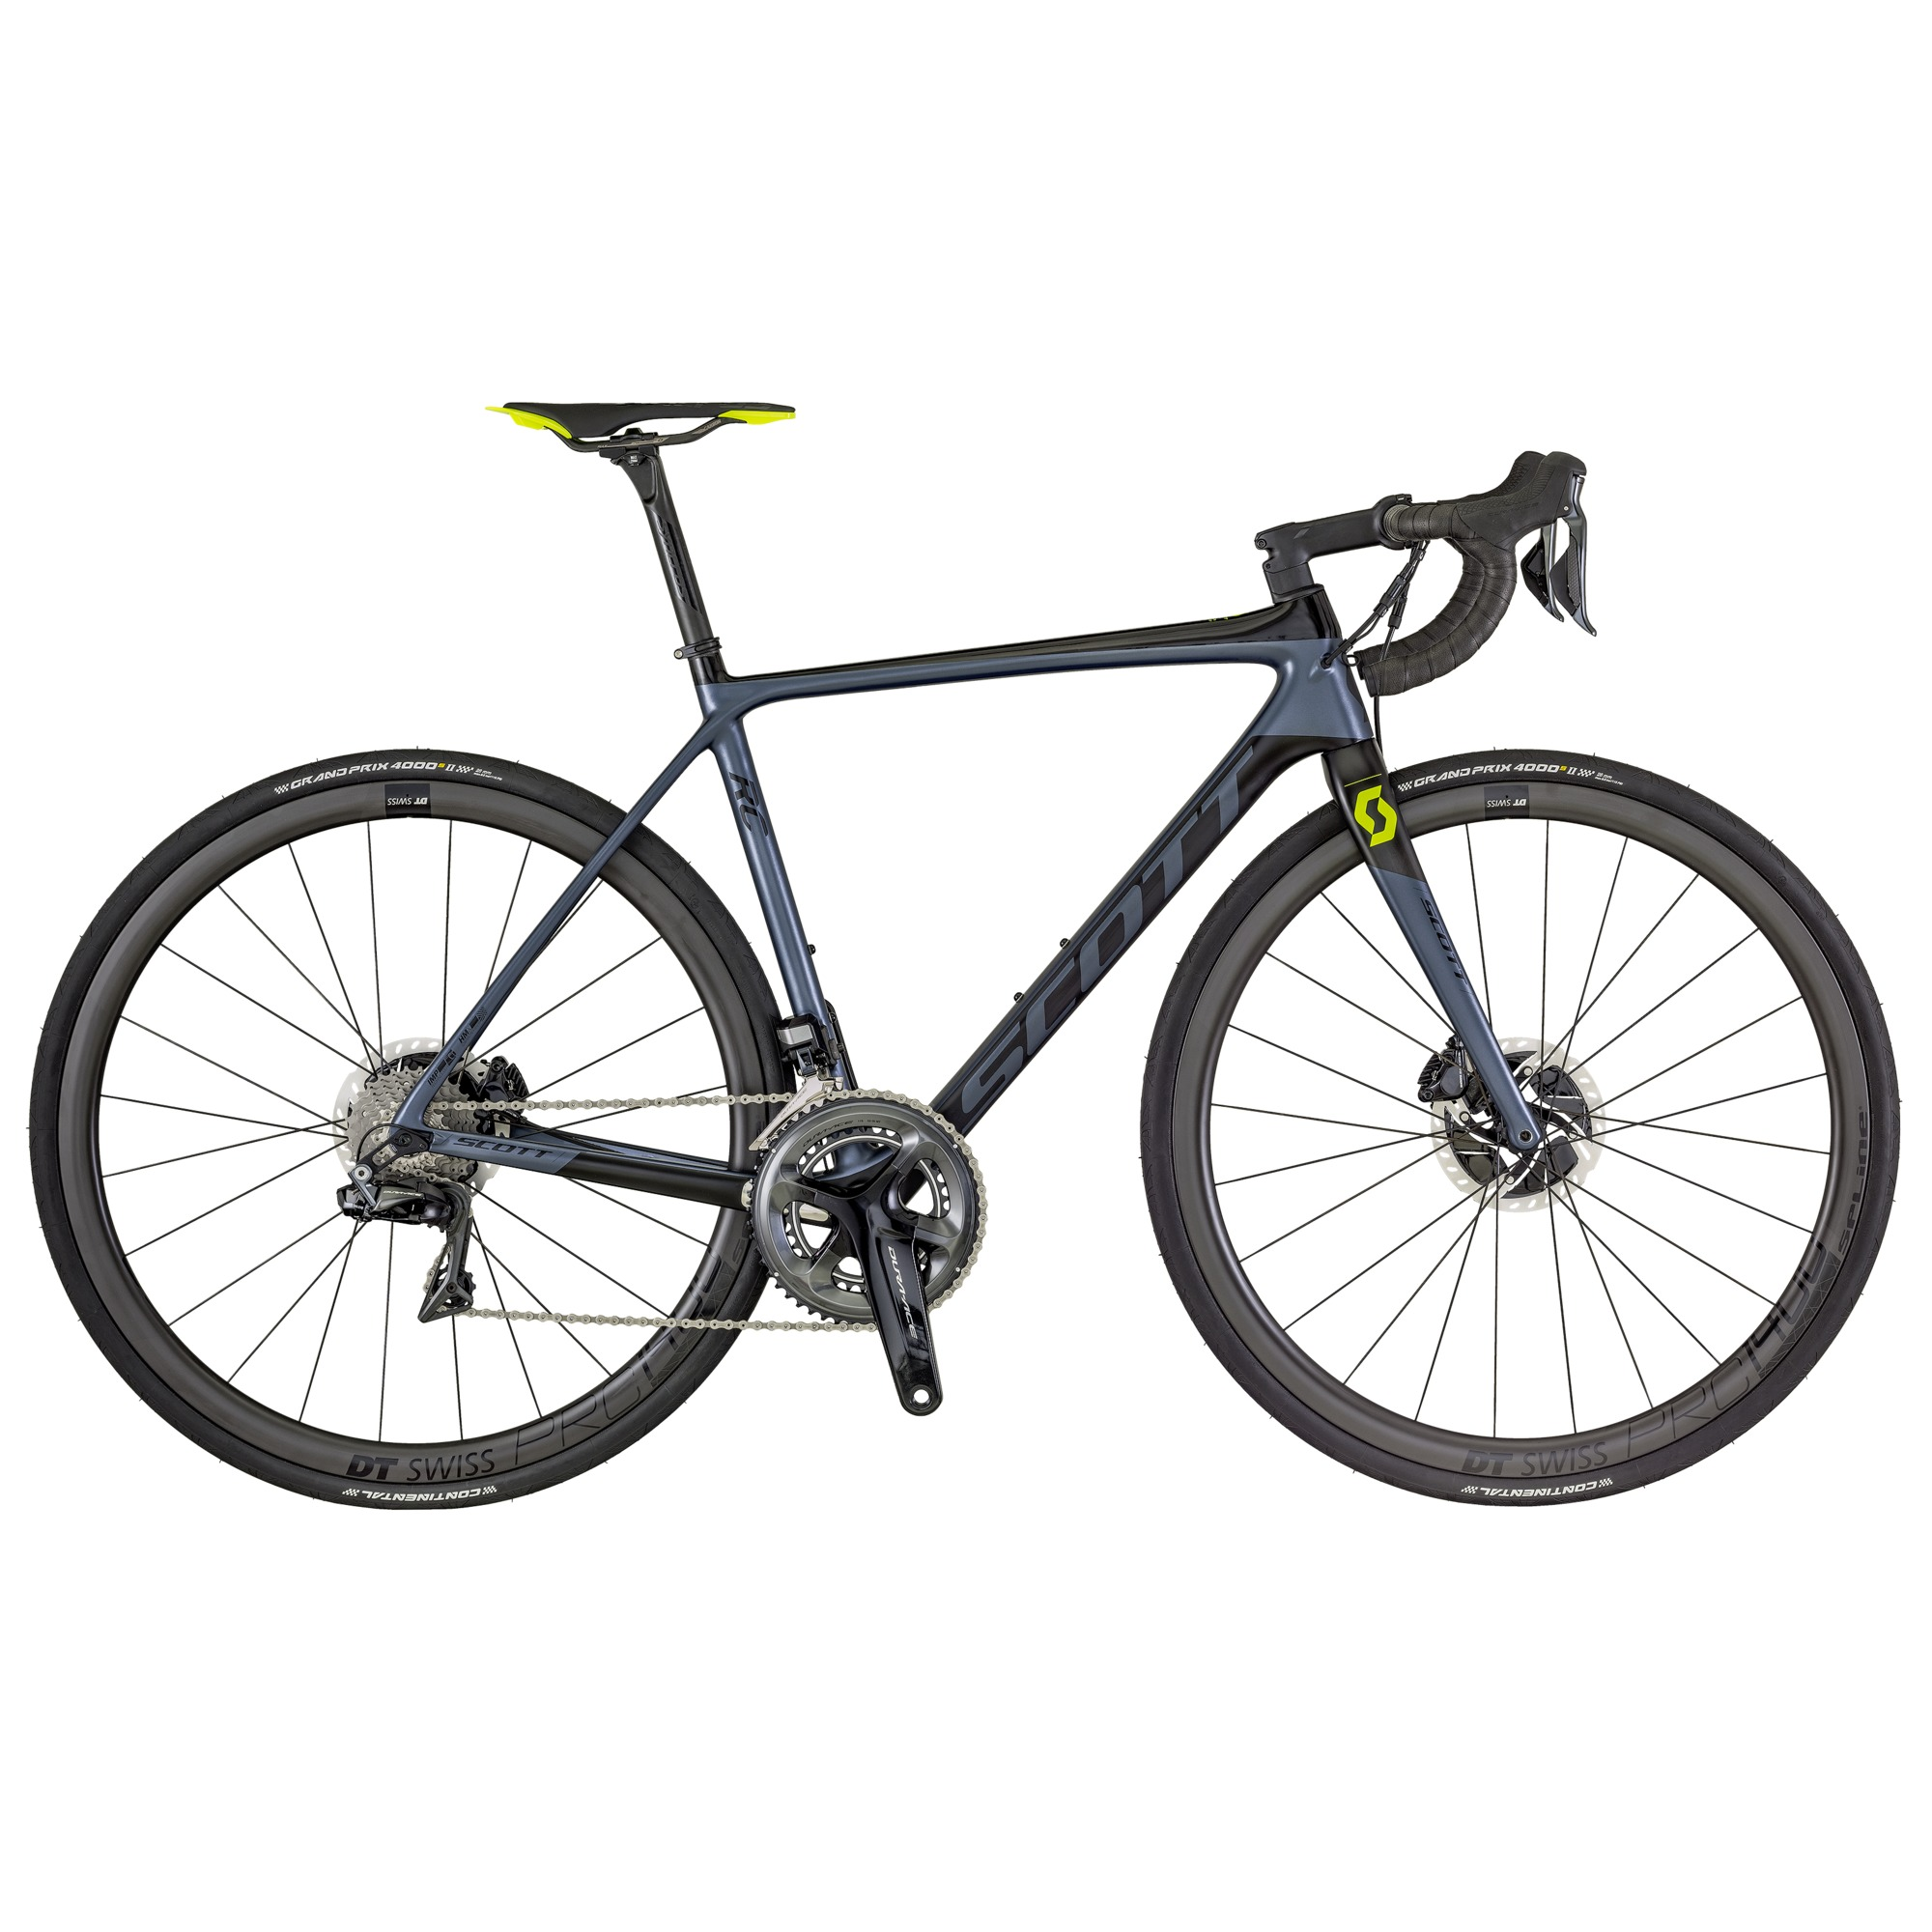 SCOTT Addict RC Premium Disc Bike 2XL61 - Zweirad Homann